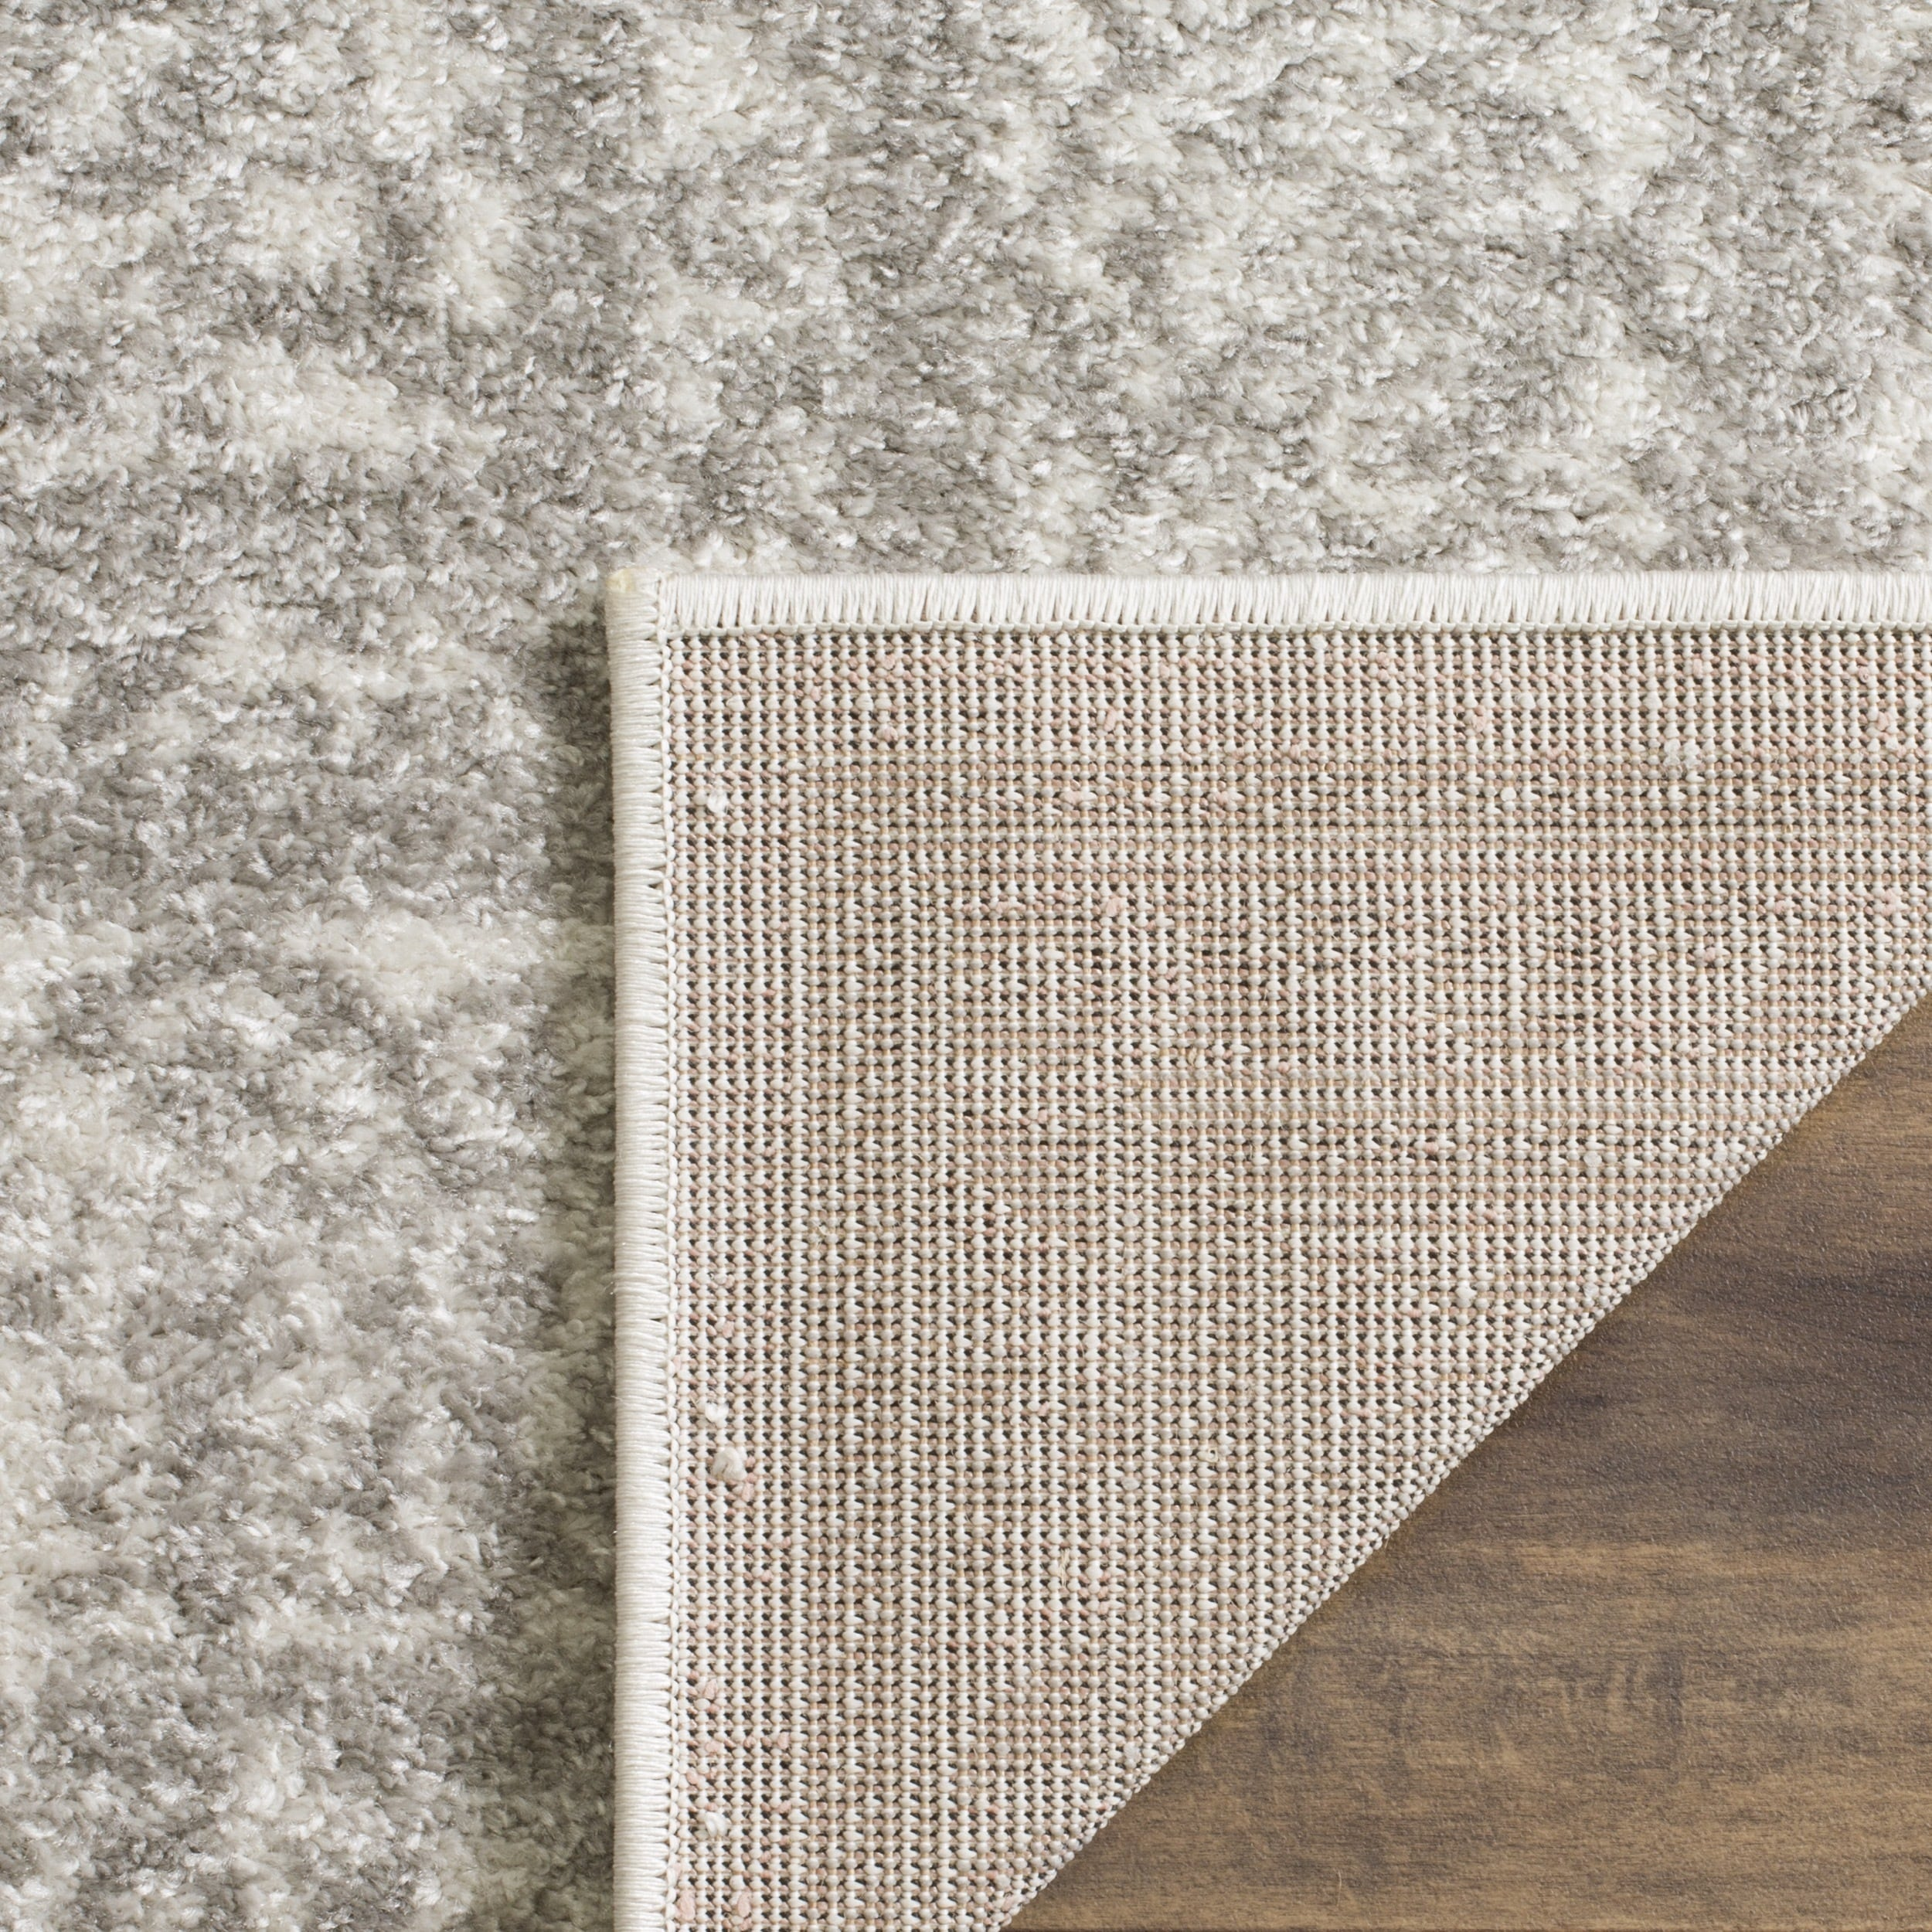 Safavieh Adirondack Vintage Distressed Ivory / Silver Large Area Rug (10' x  14') - Free Shipping Today - Overstock.com - 16088656